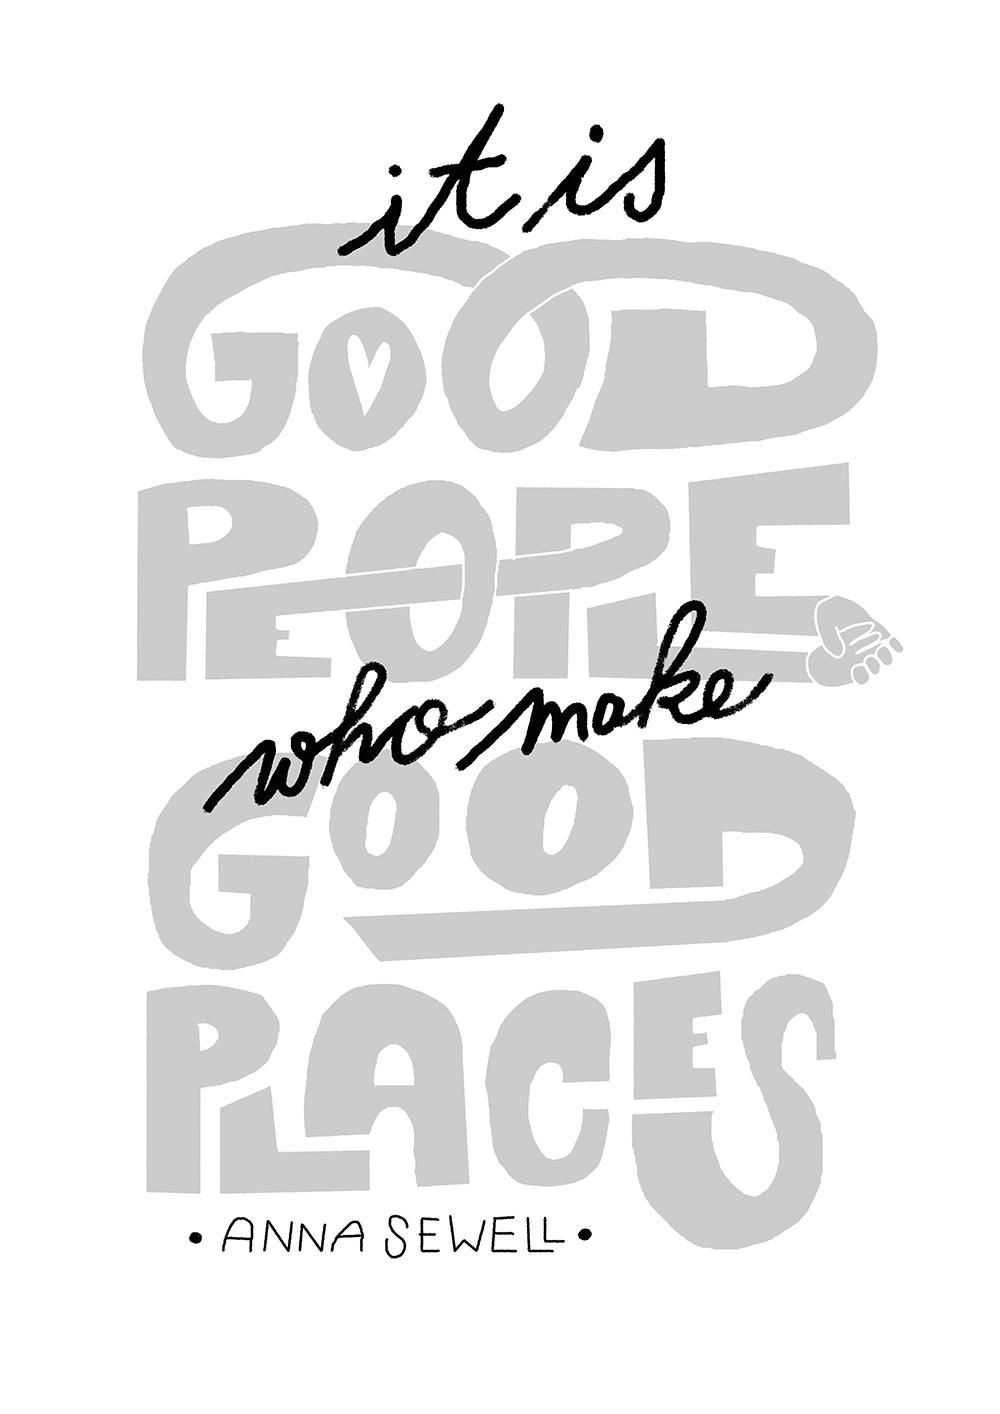 It is good people who make good places - image 3 - student project